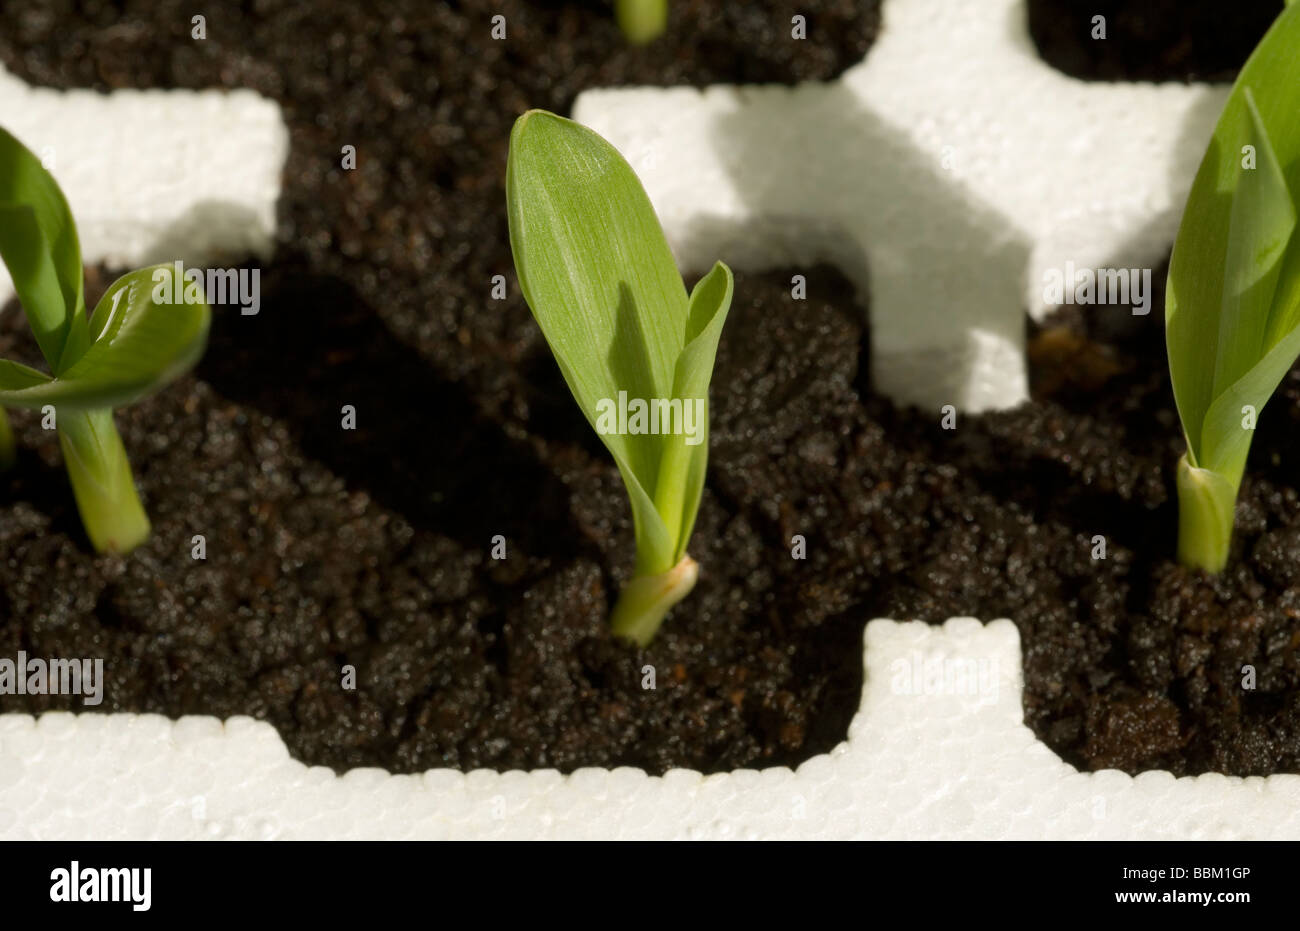 GREEN SHOOTS. SHOT OF YOUNG SWEETCORN  PLANTS. - Stock Image